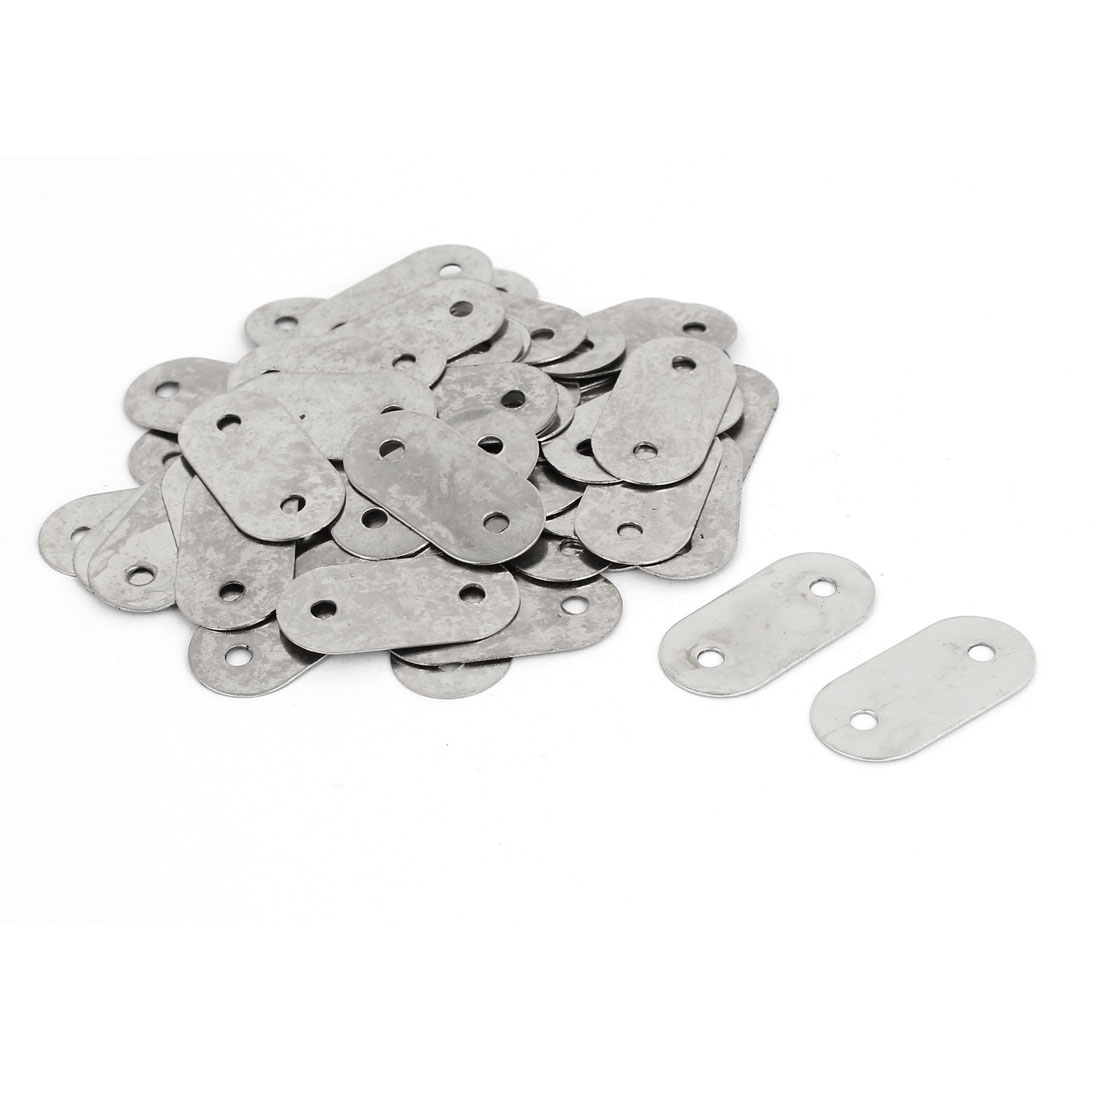 28mm x 14mm Flat Corner Brace Brackets Straight Mending Repair Plates 50PCS